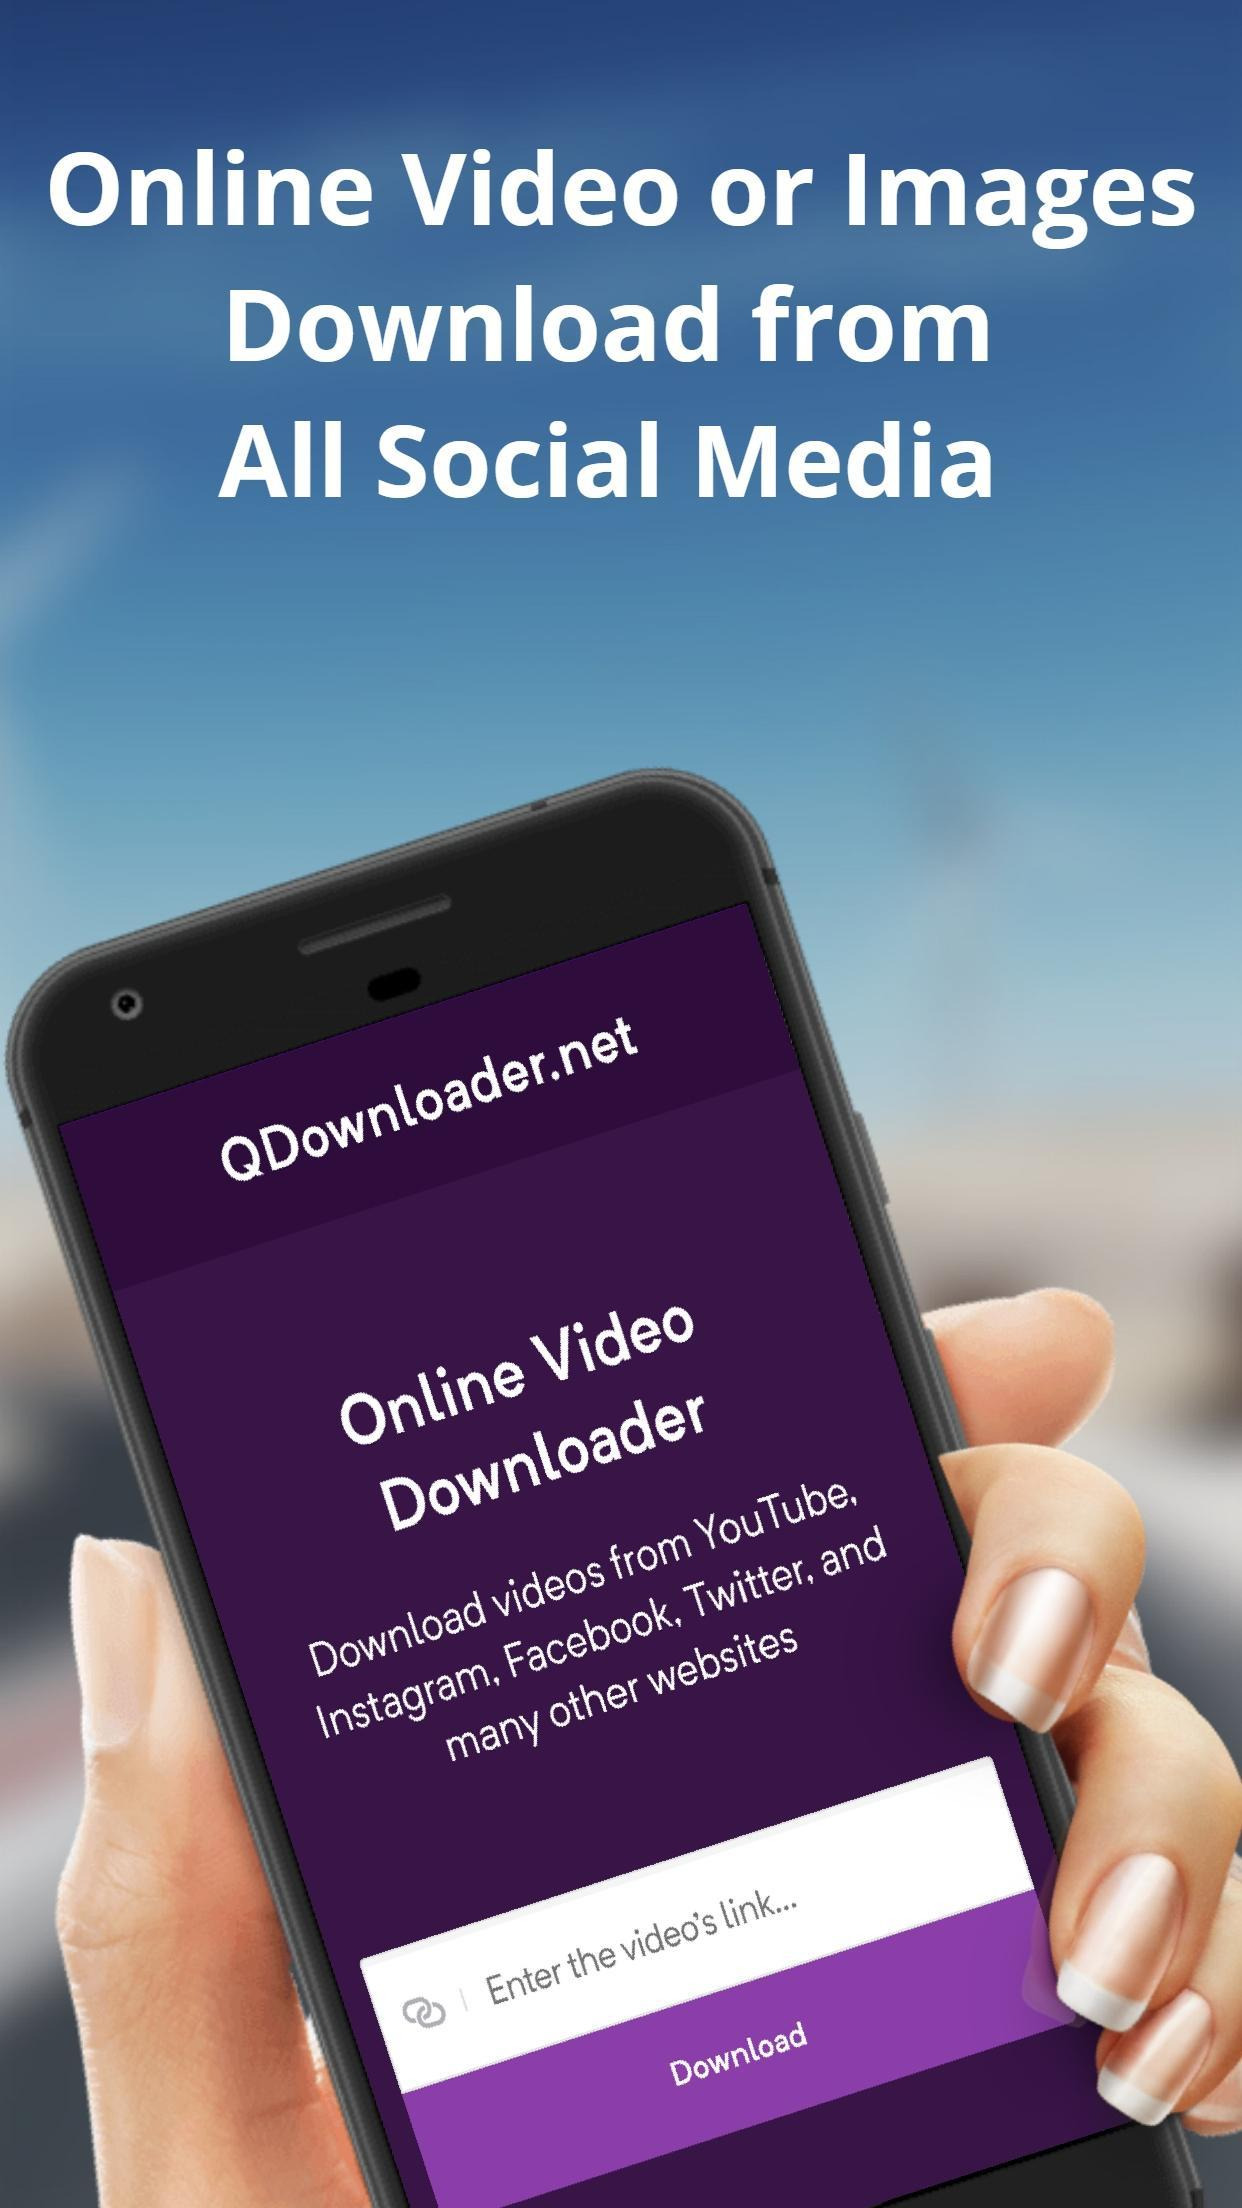 DOWNLOAD VIDEO FROM INSTAGRAM IPHONE ONLINE - How to